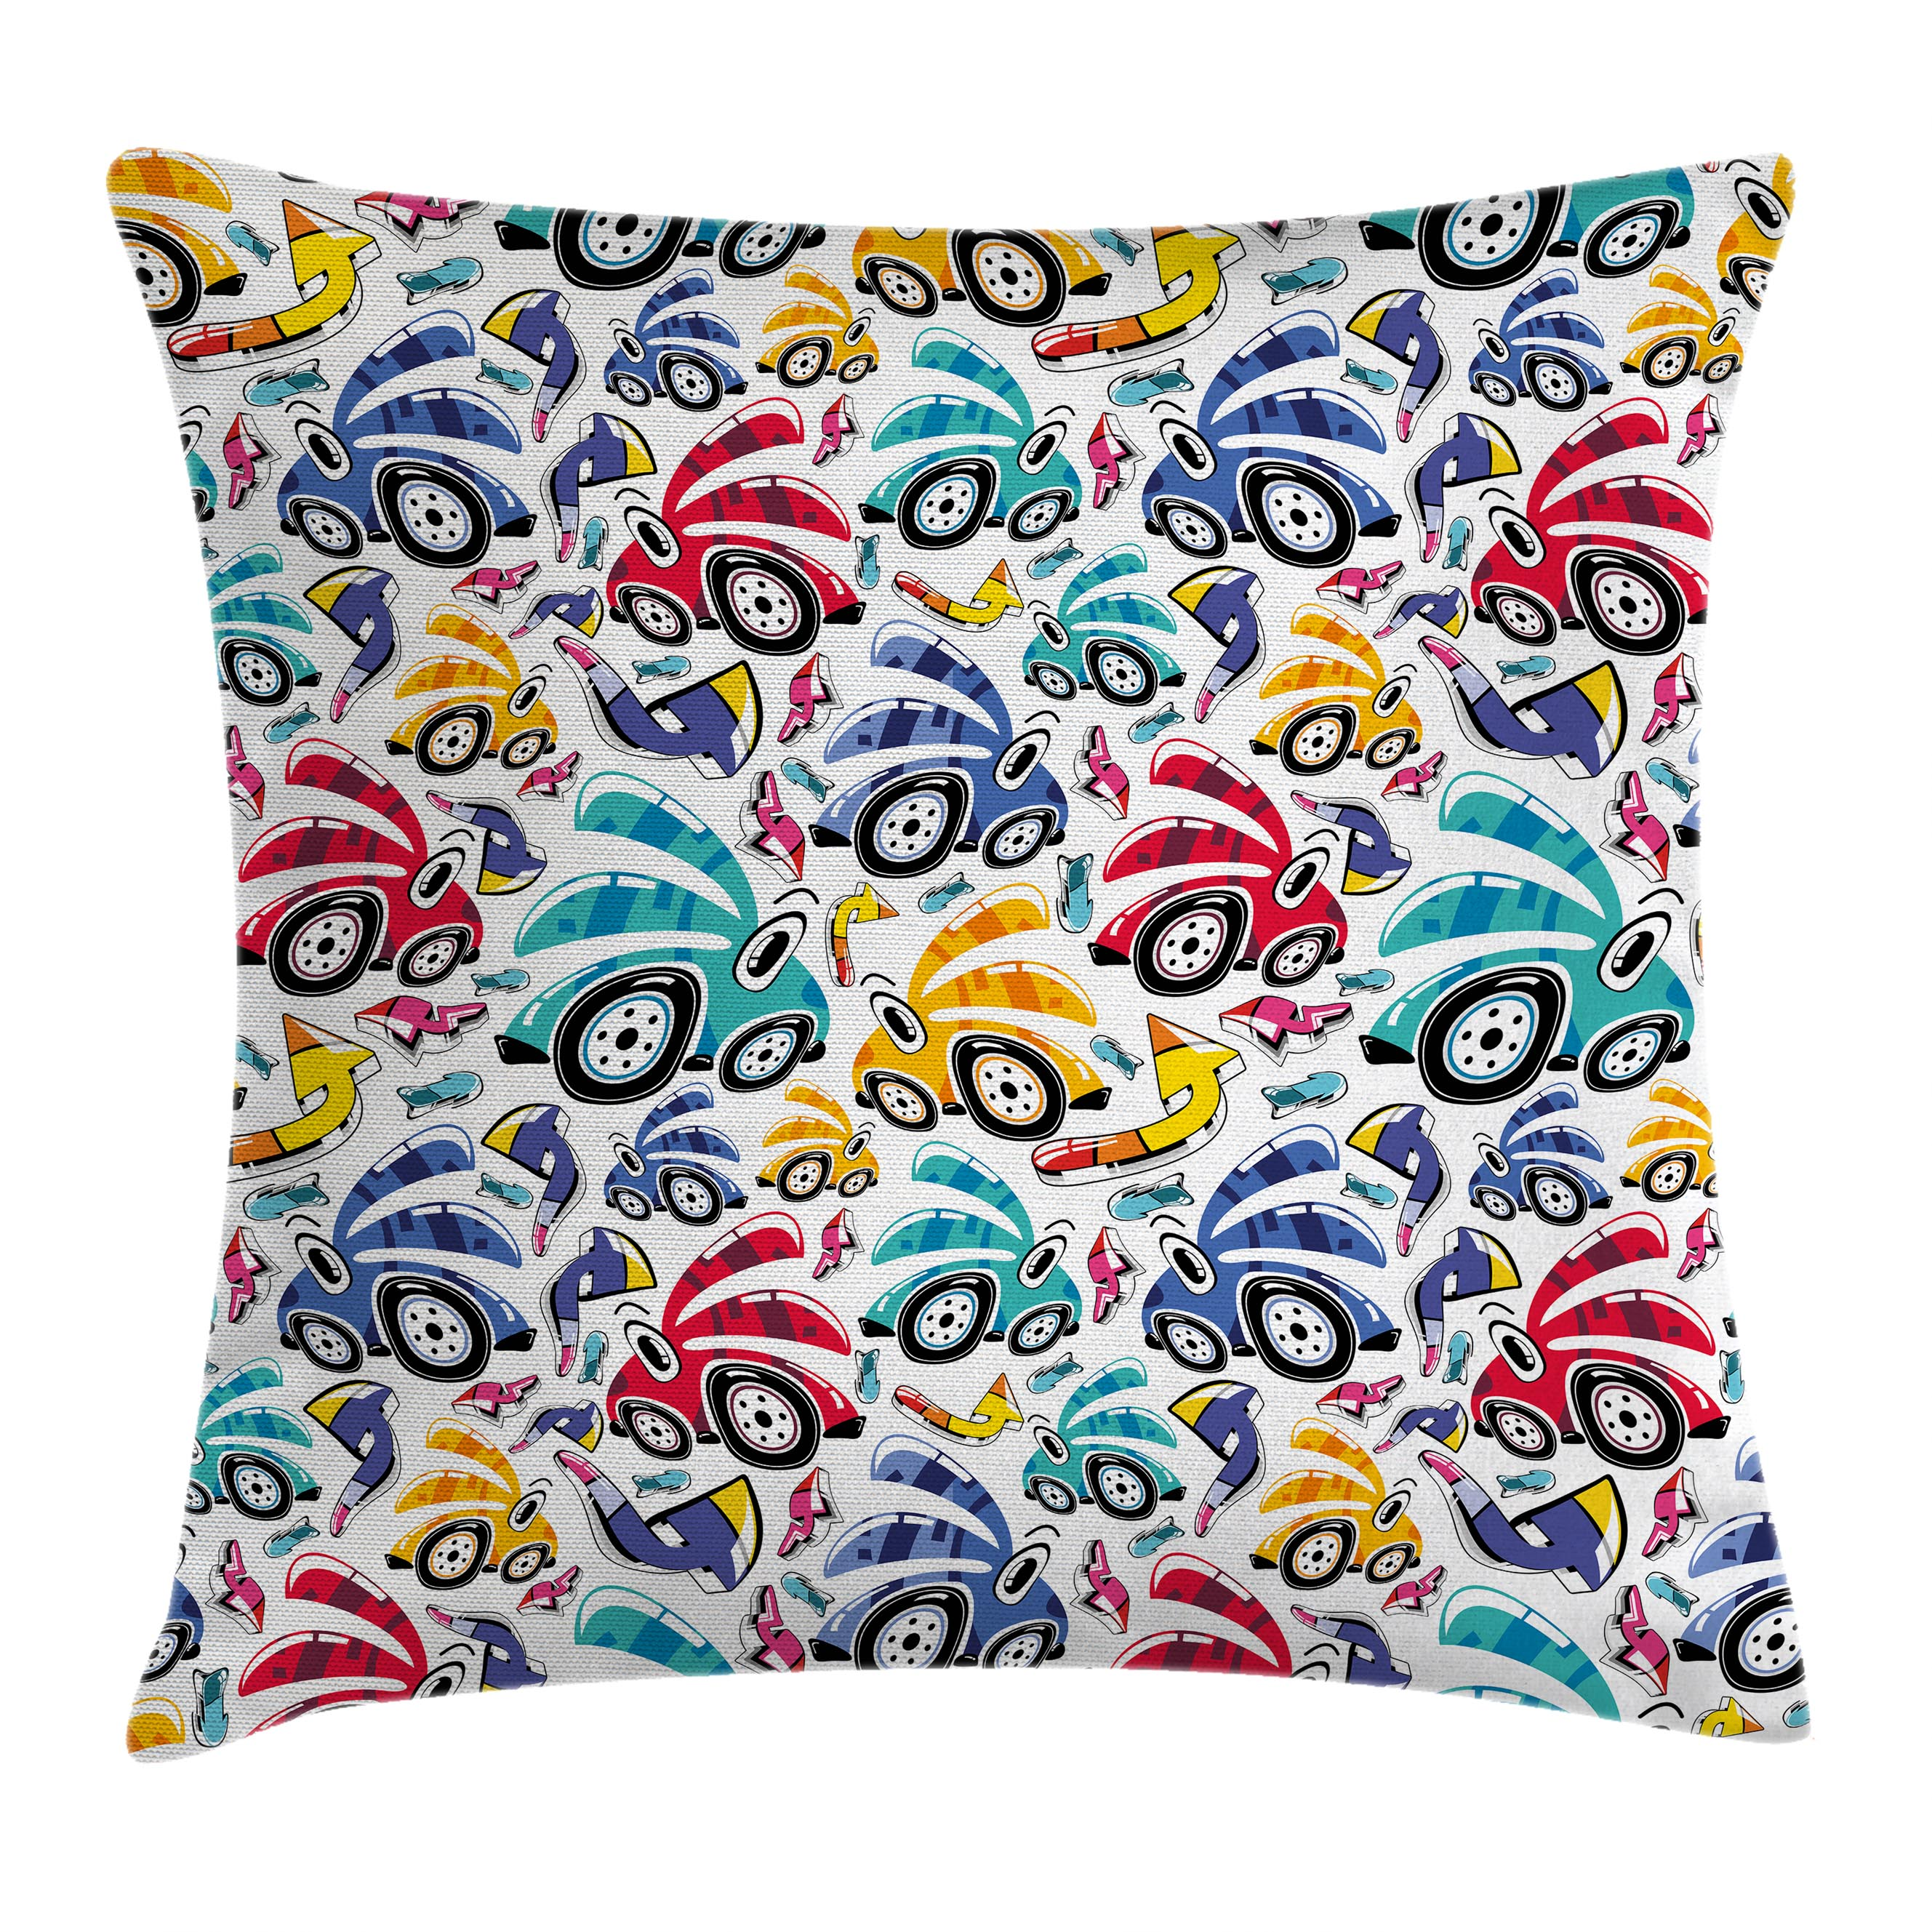 Modern Decor Throw Pillow Cushion Cover, Vintage Cartoon Like Rainbow Vivid Colorful Cars For Kids Nursery Room Print, Decorative Square Accent Pillow Case, 16 X 16 Inches, Multicolor, by Ambesonne